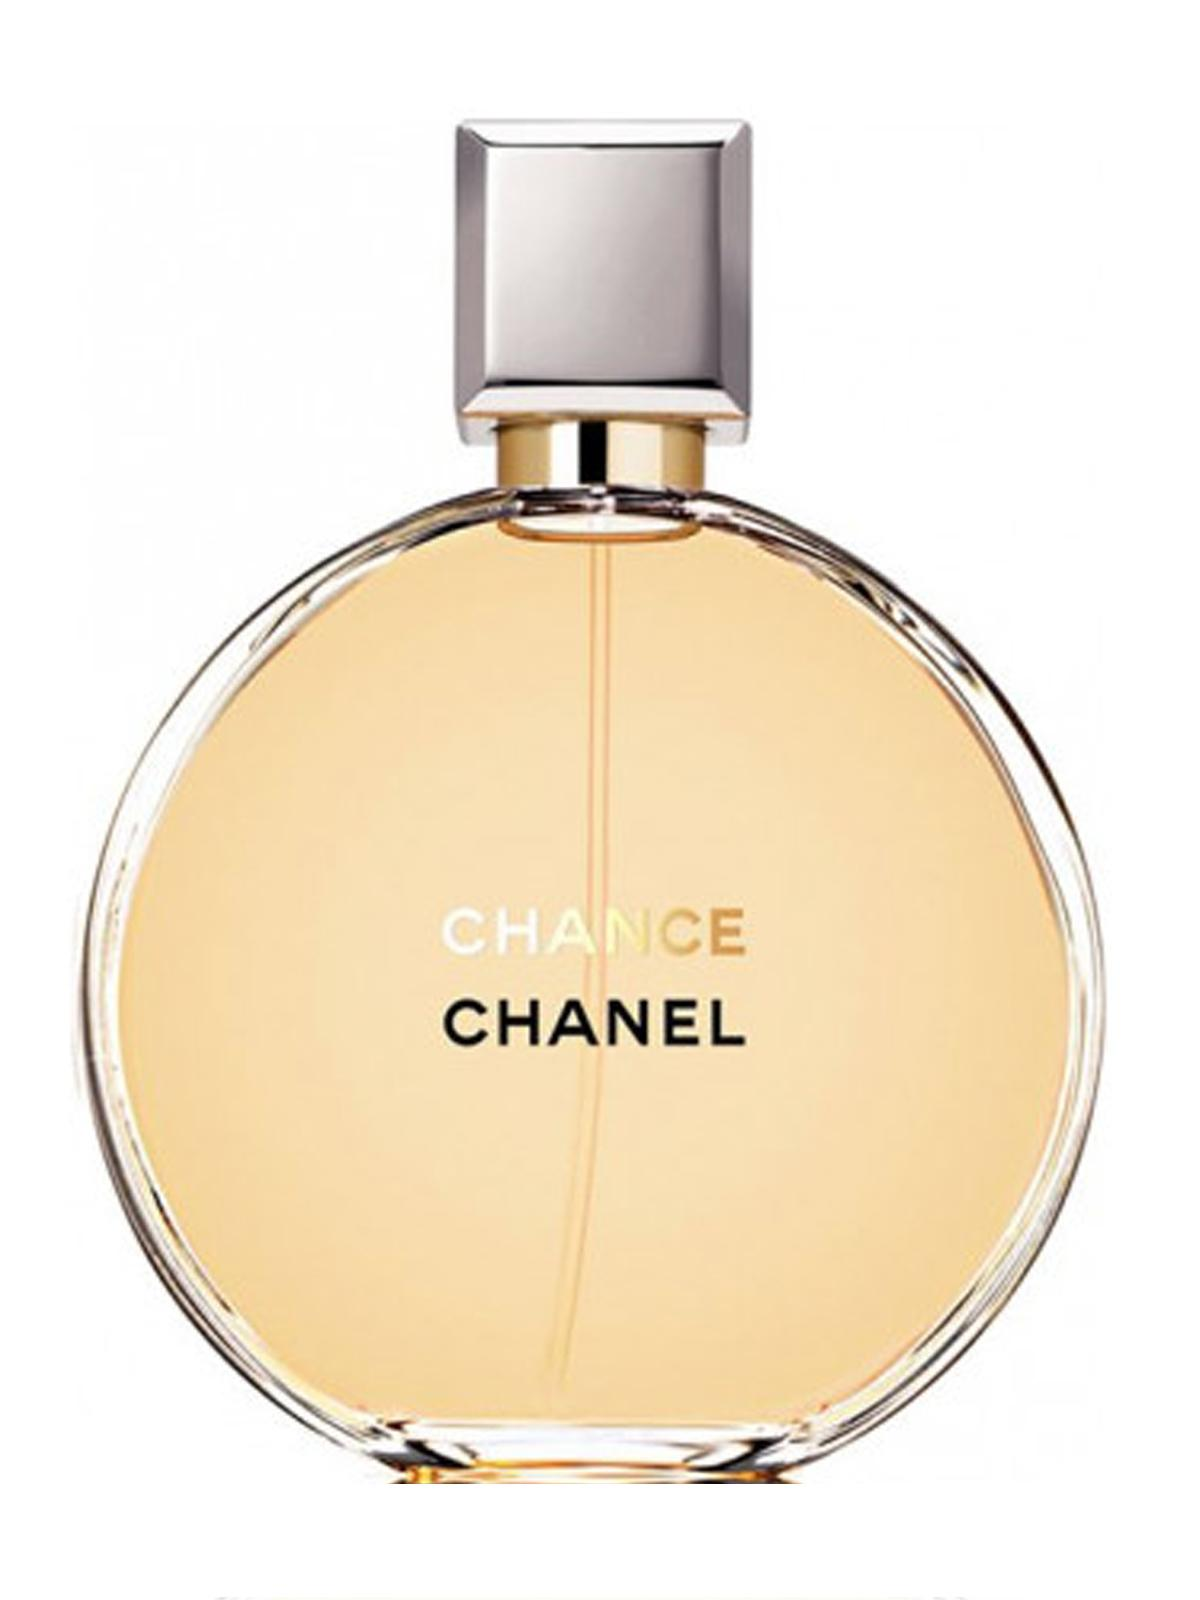 Chanel Chance For Women Eau De Parfum 100ML